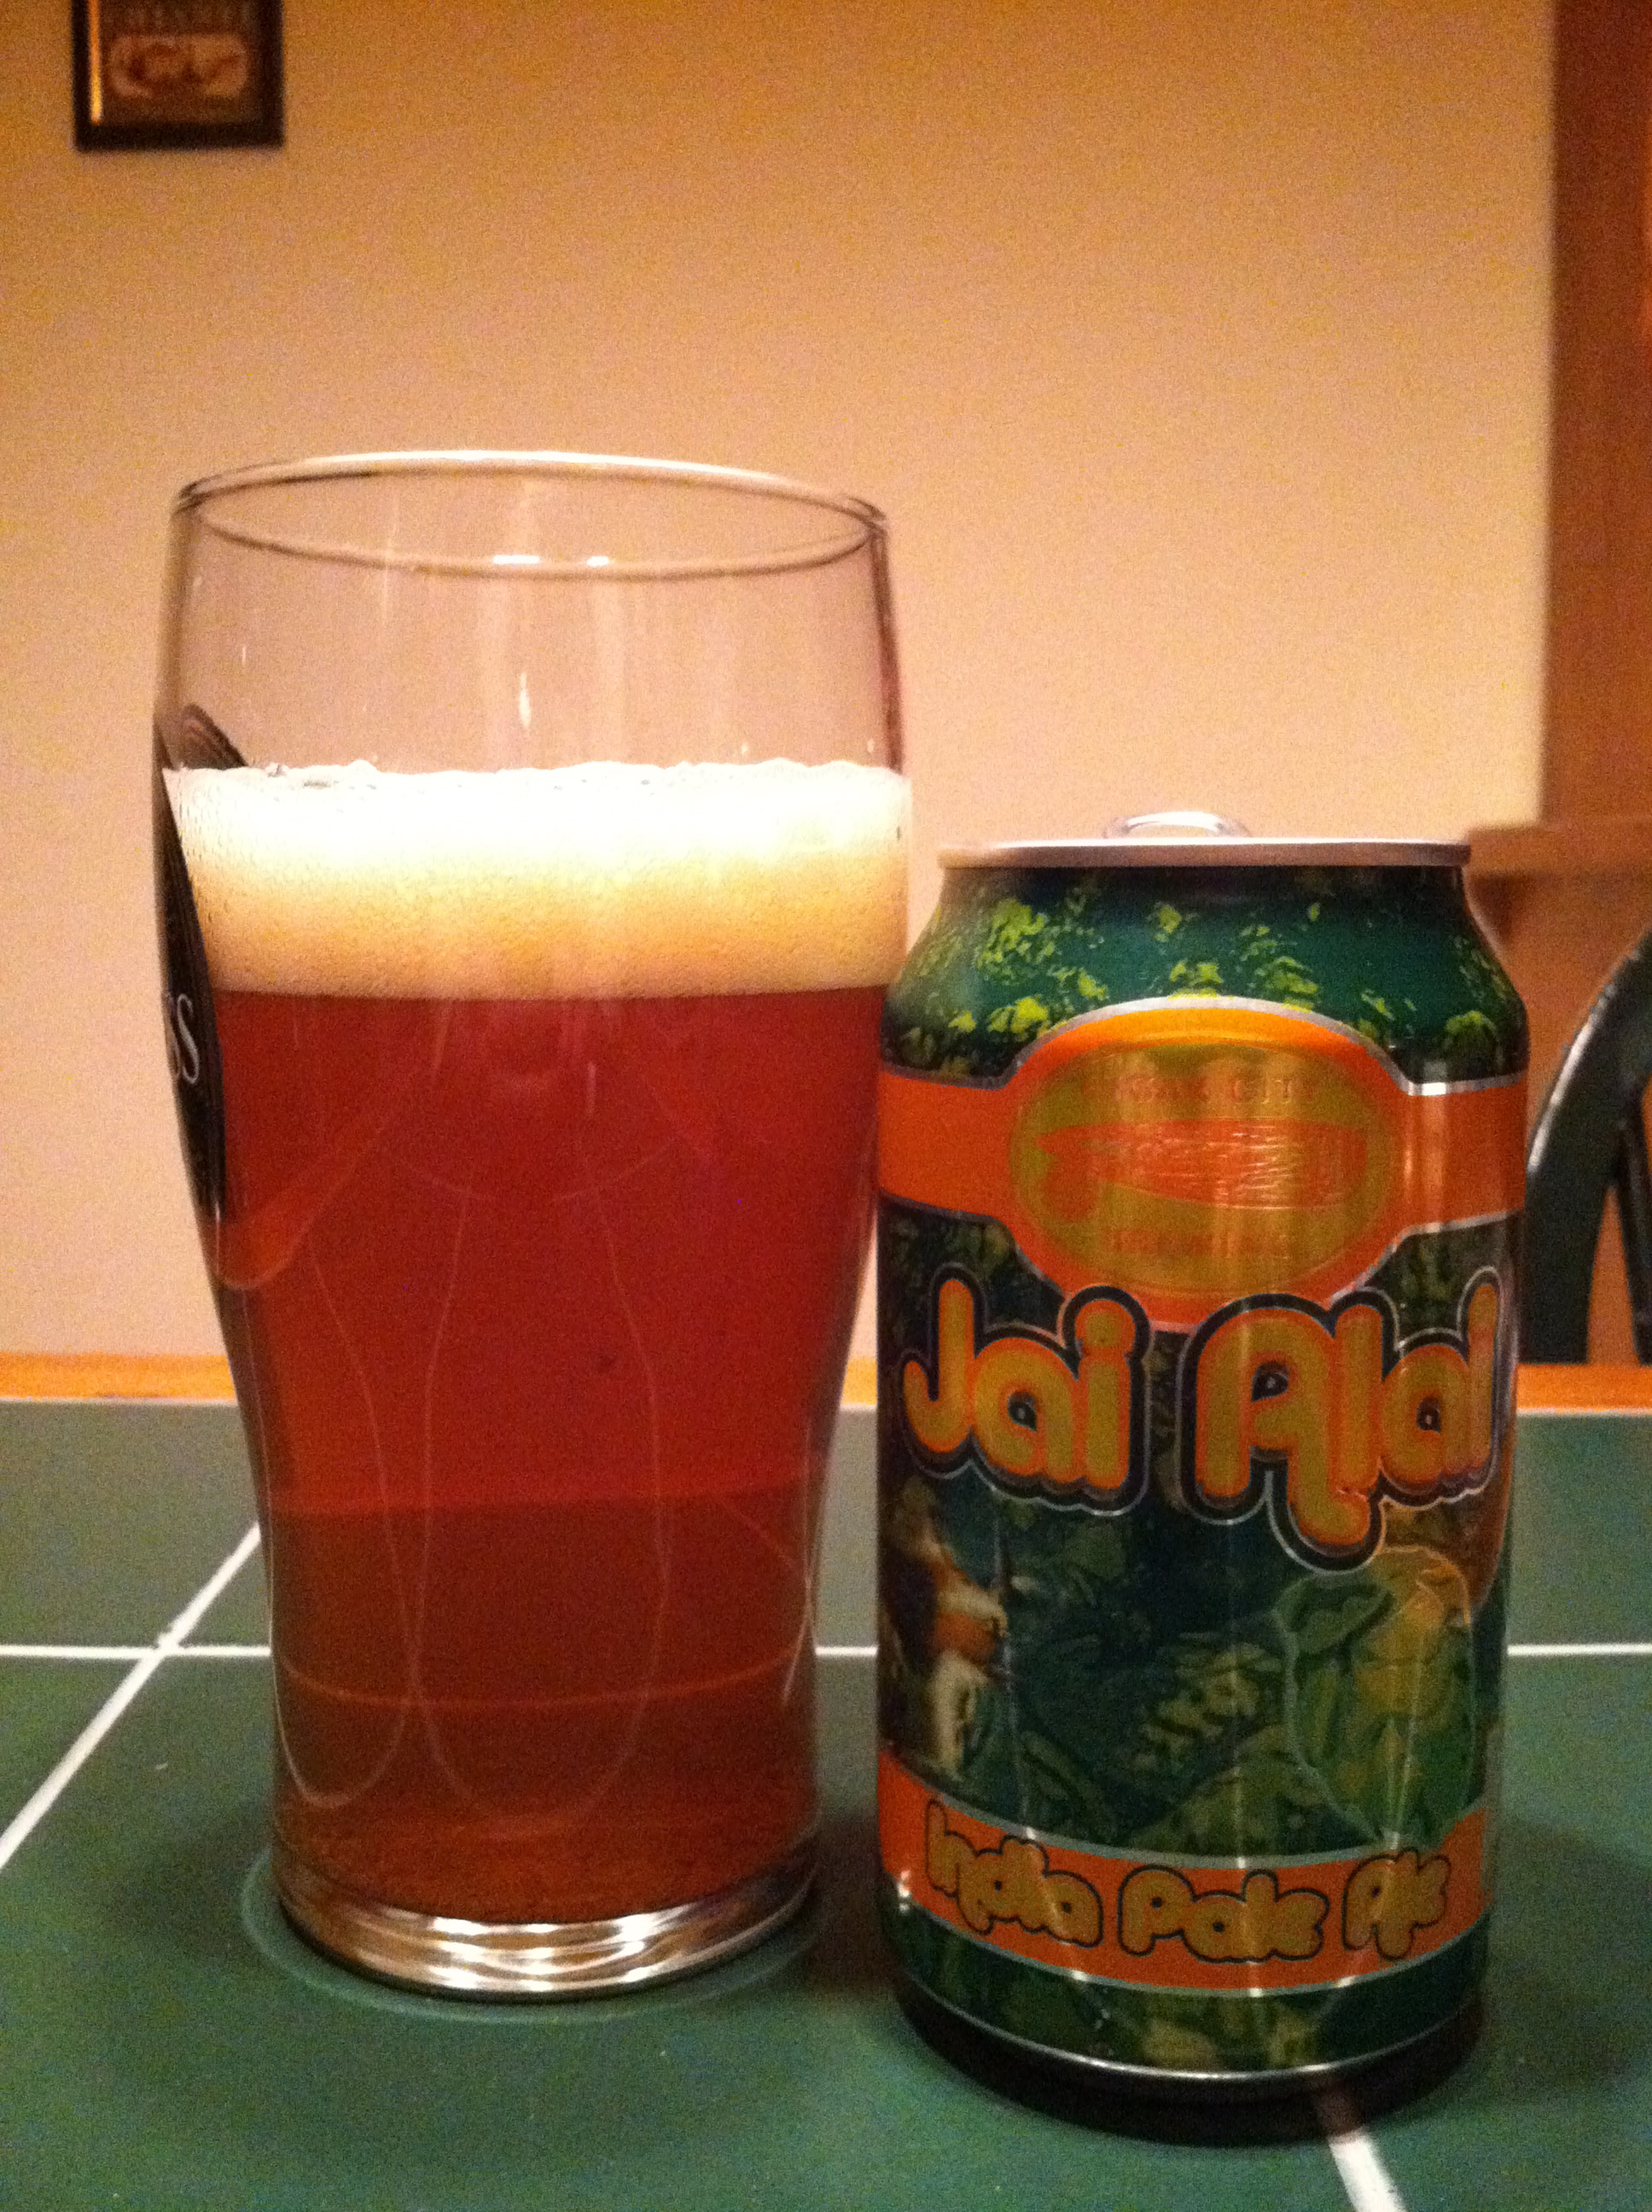 Jai Alai - India Pale Ale